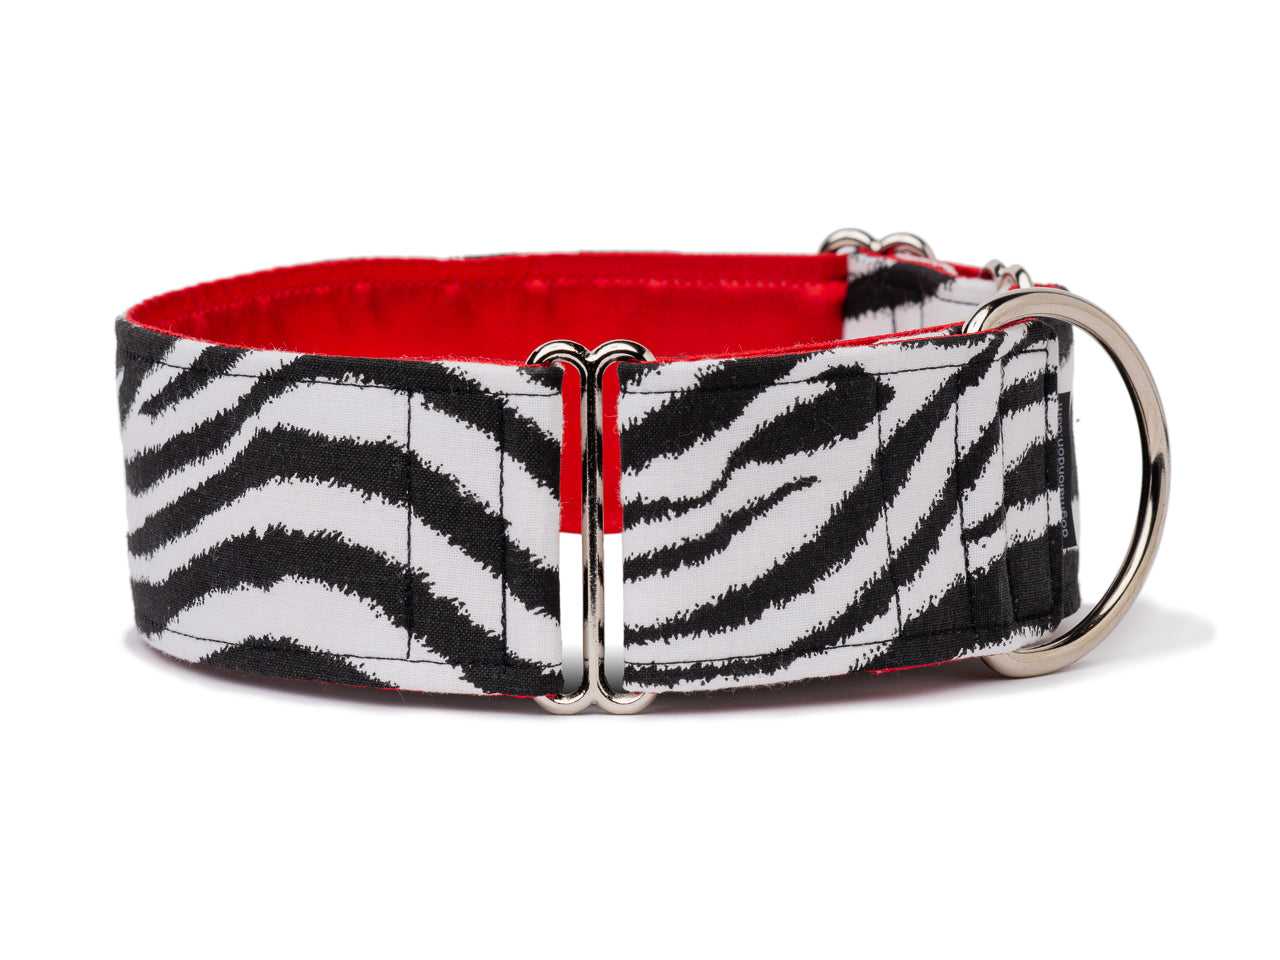 Striking black and white zebra print collar is the perfect accessory for your fashionable four-legged wild child!